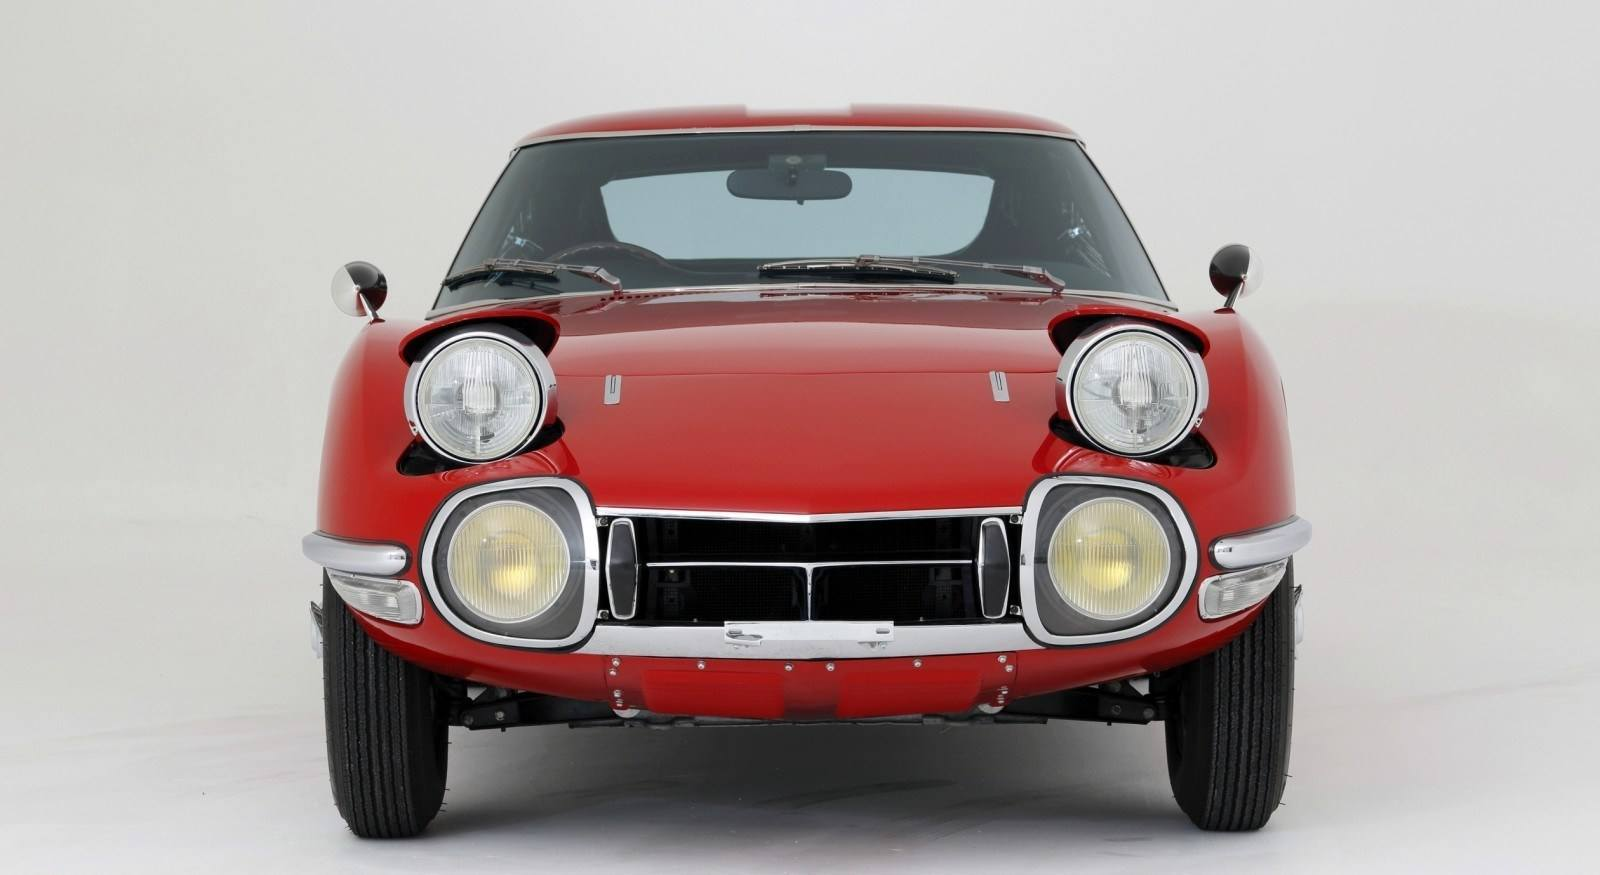 RM Auctions Monaco 2014 Highlights - 1968 Toyota 2000GT Joins Rare ...